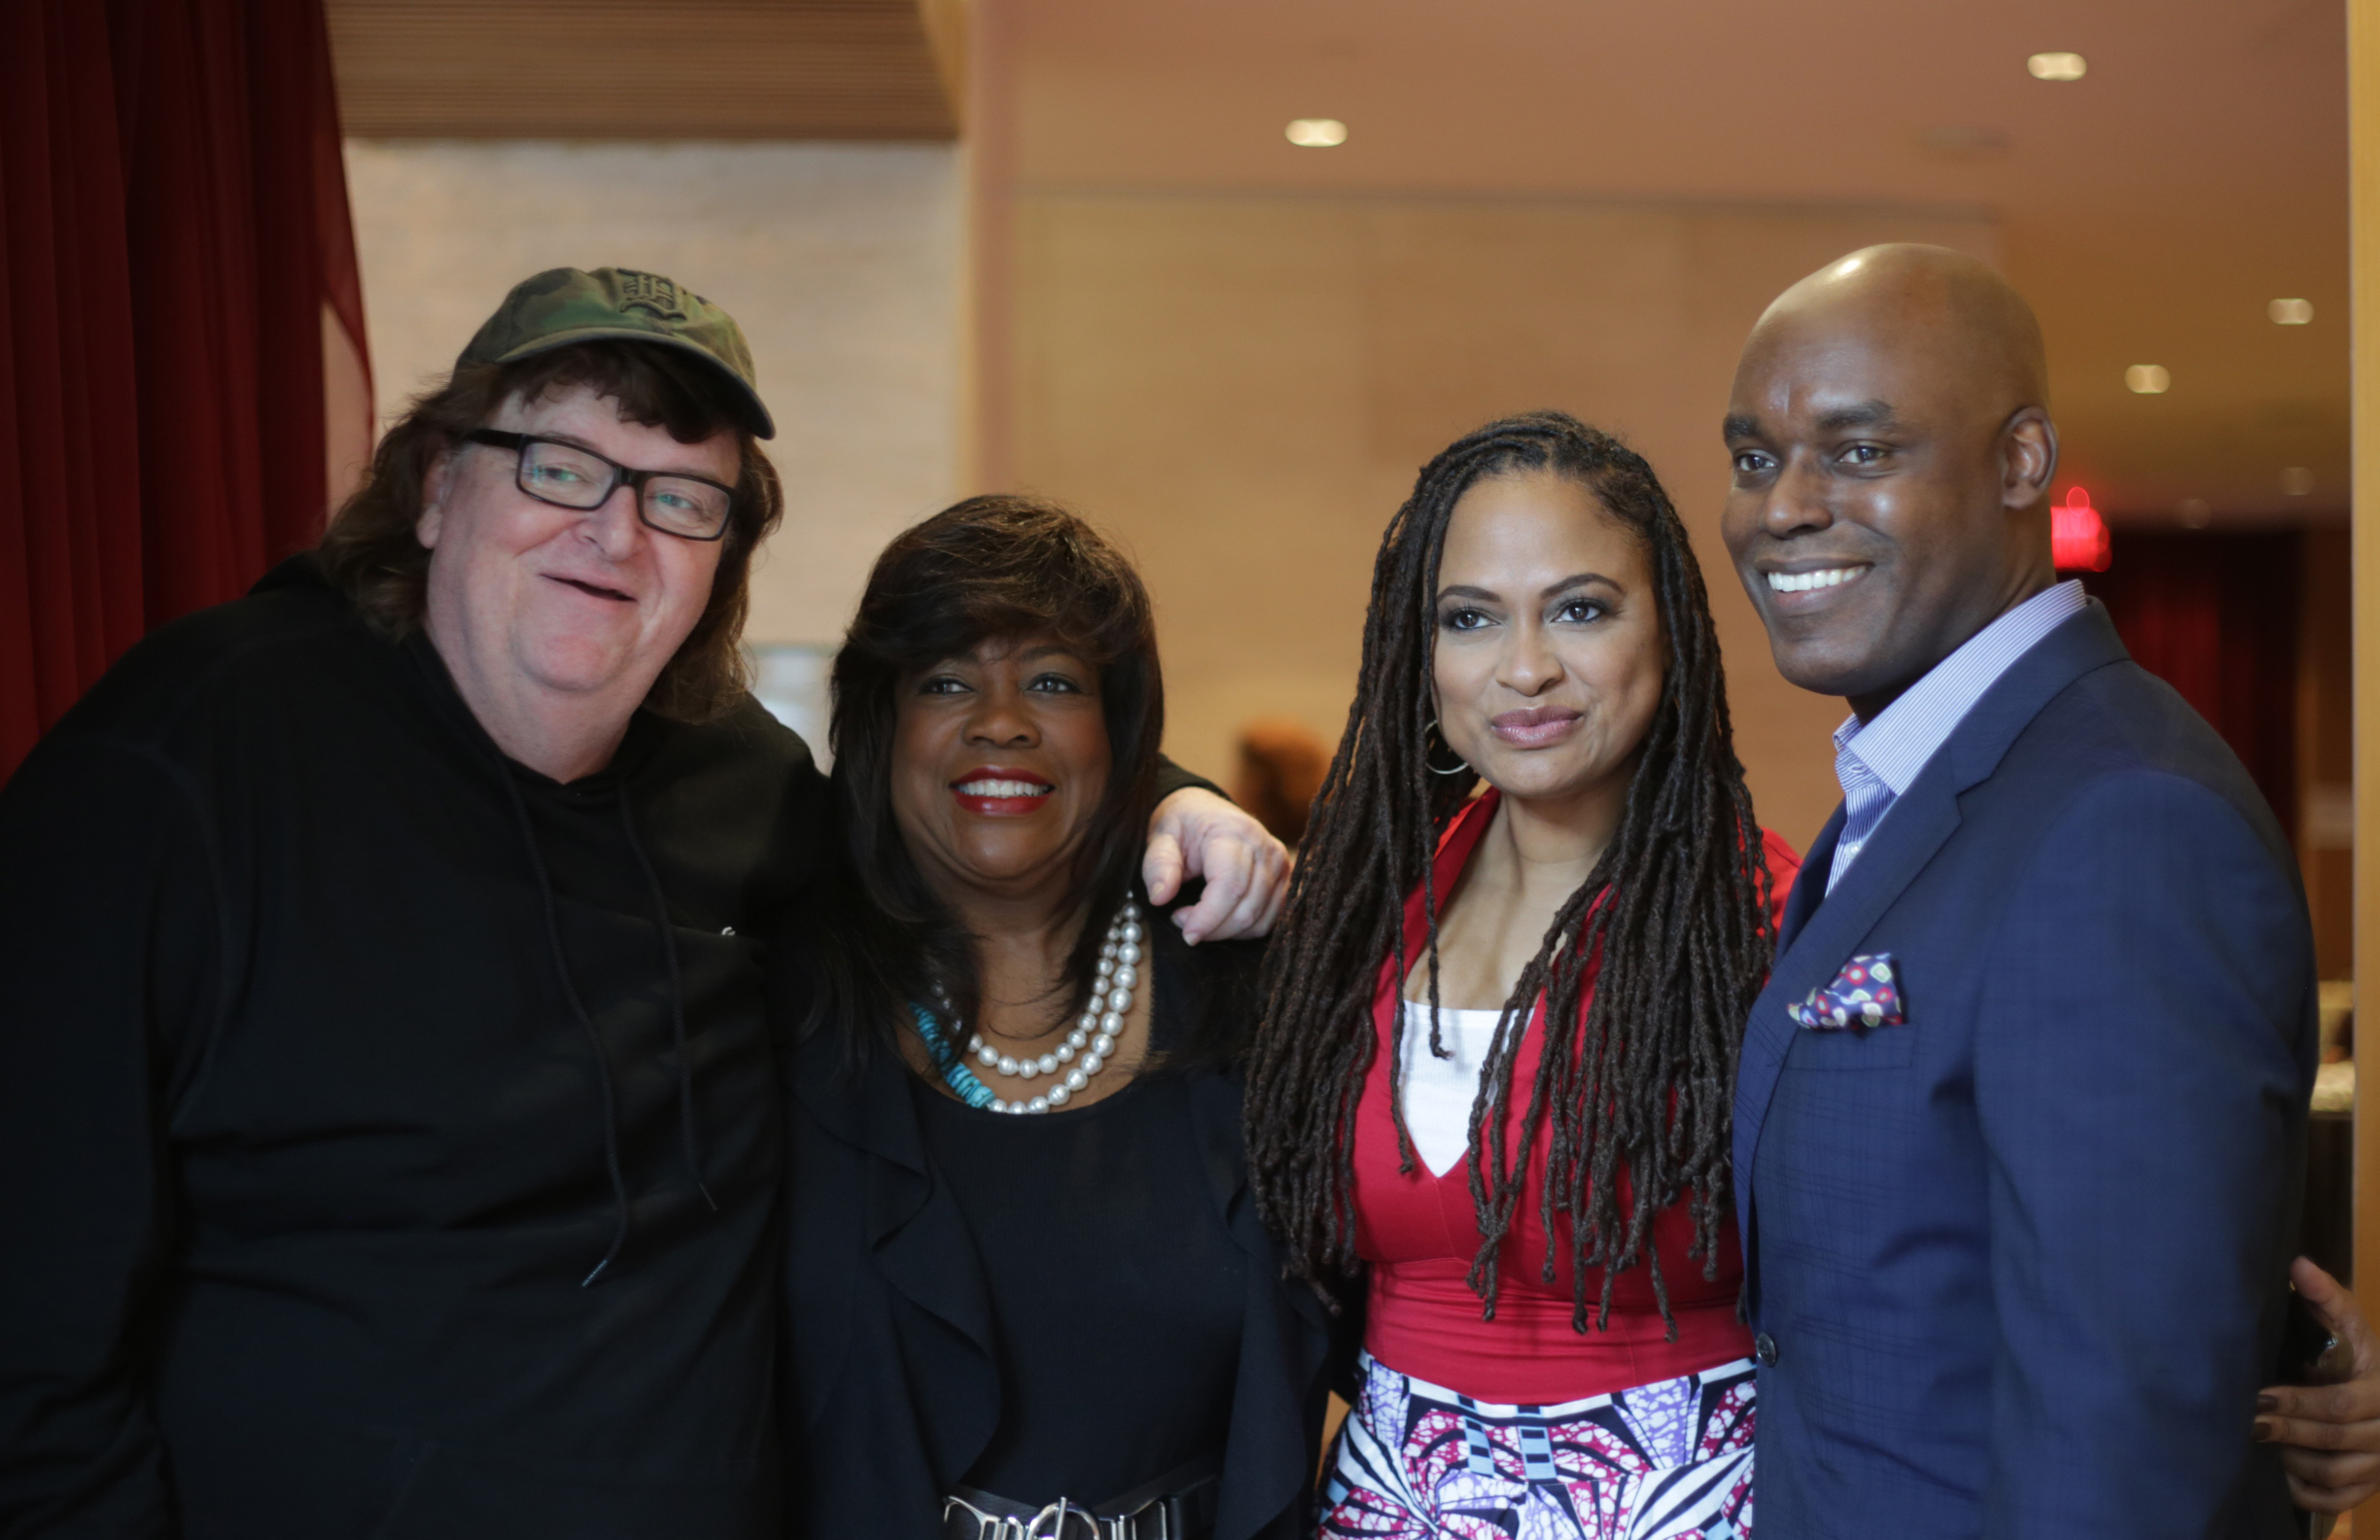 TIFF 15 Ebert Tribute Lunch